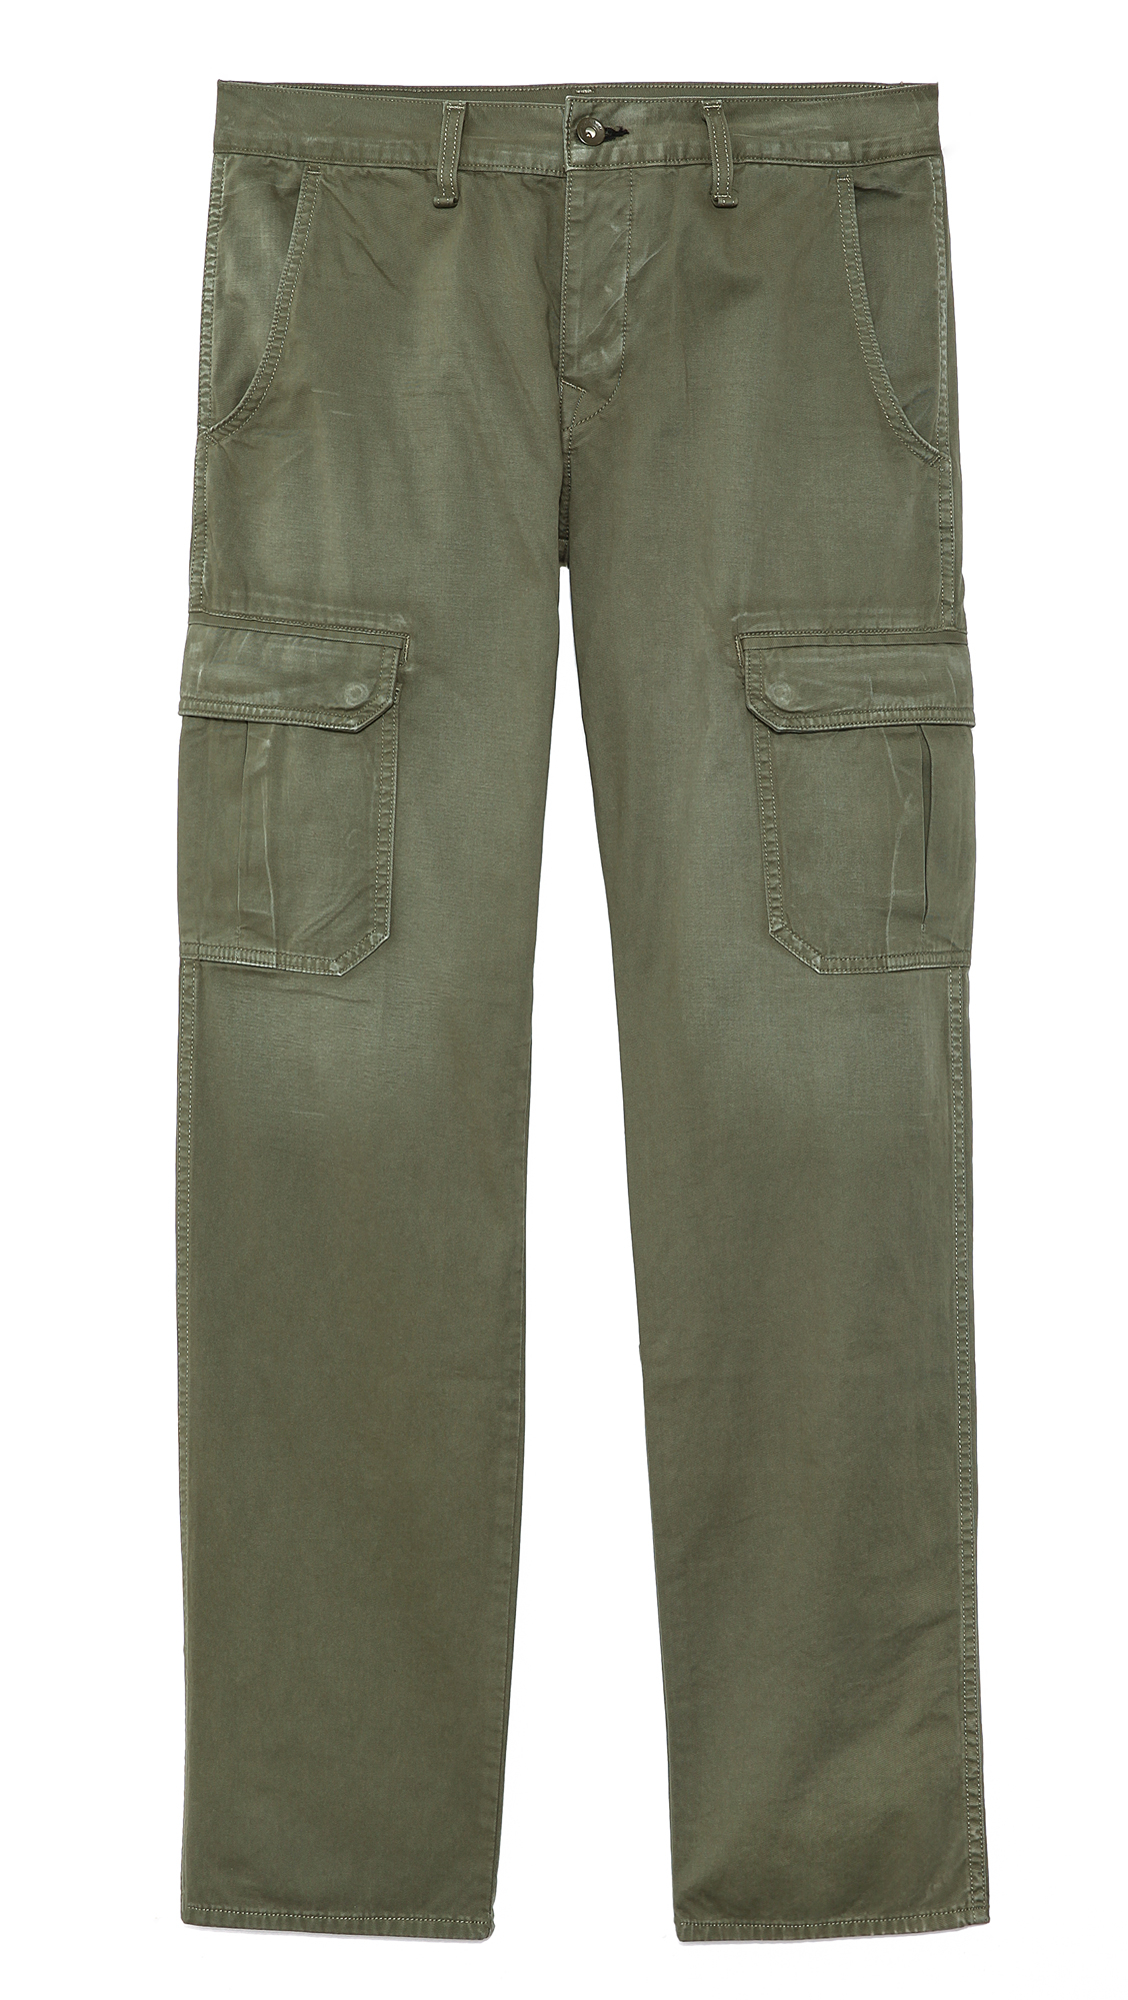 Rag & bone Distressed Army Radar Cargo Pants in Green for Men | Lyst